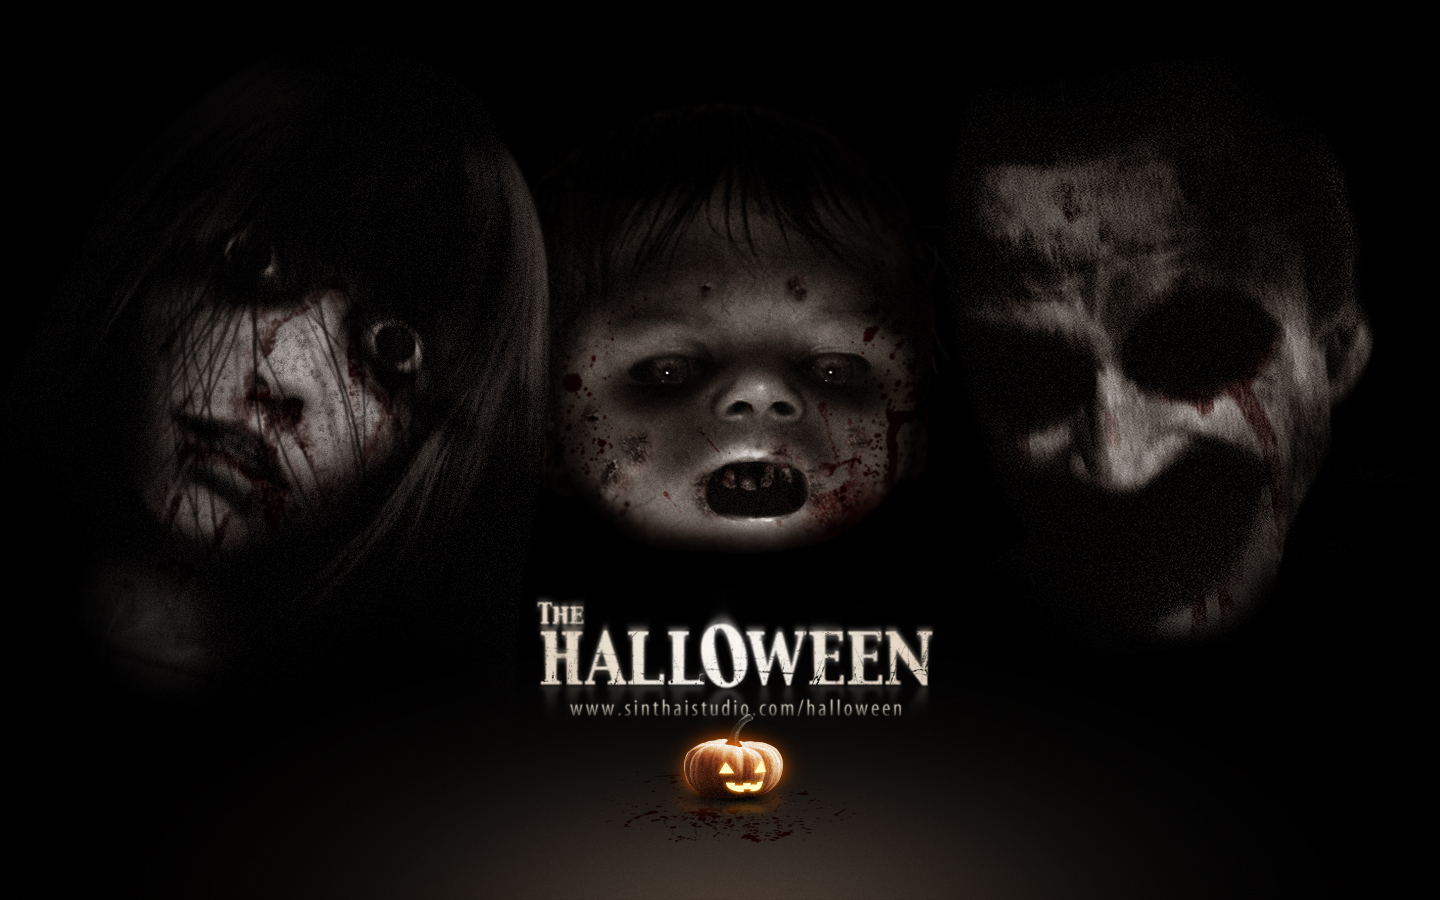 http://www.darkhorrorgames.com/images/game_review/the-halloween-wallpaper.jpg